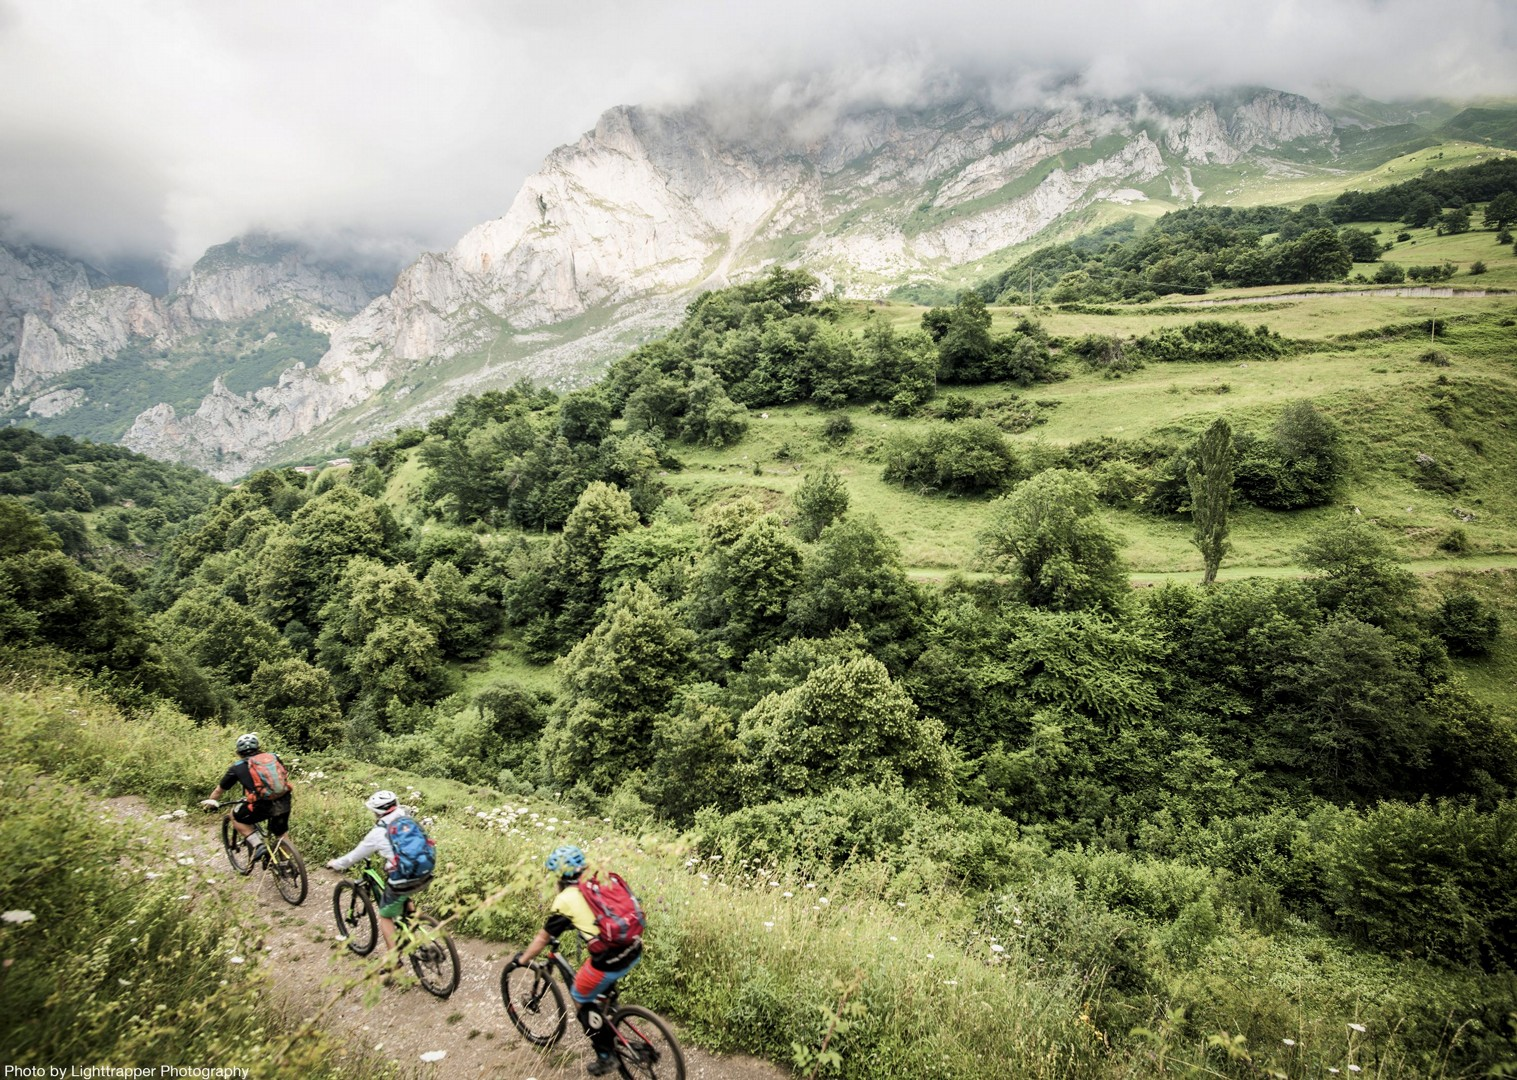 group-exploration-adventure-mountain-biking-northern-spain-picos-de-europa.jpg - Spain - Picos de Europa - Trans Picos - Guided Mountain Bike Holiday - Mountain Biking